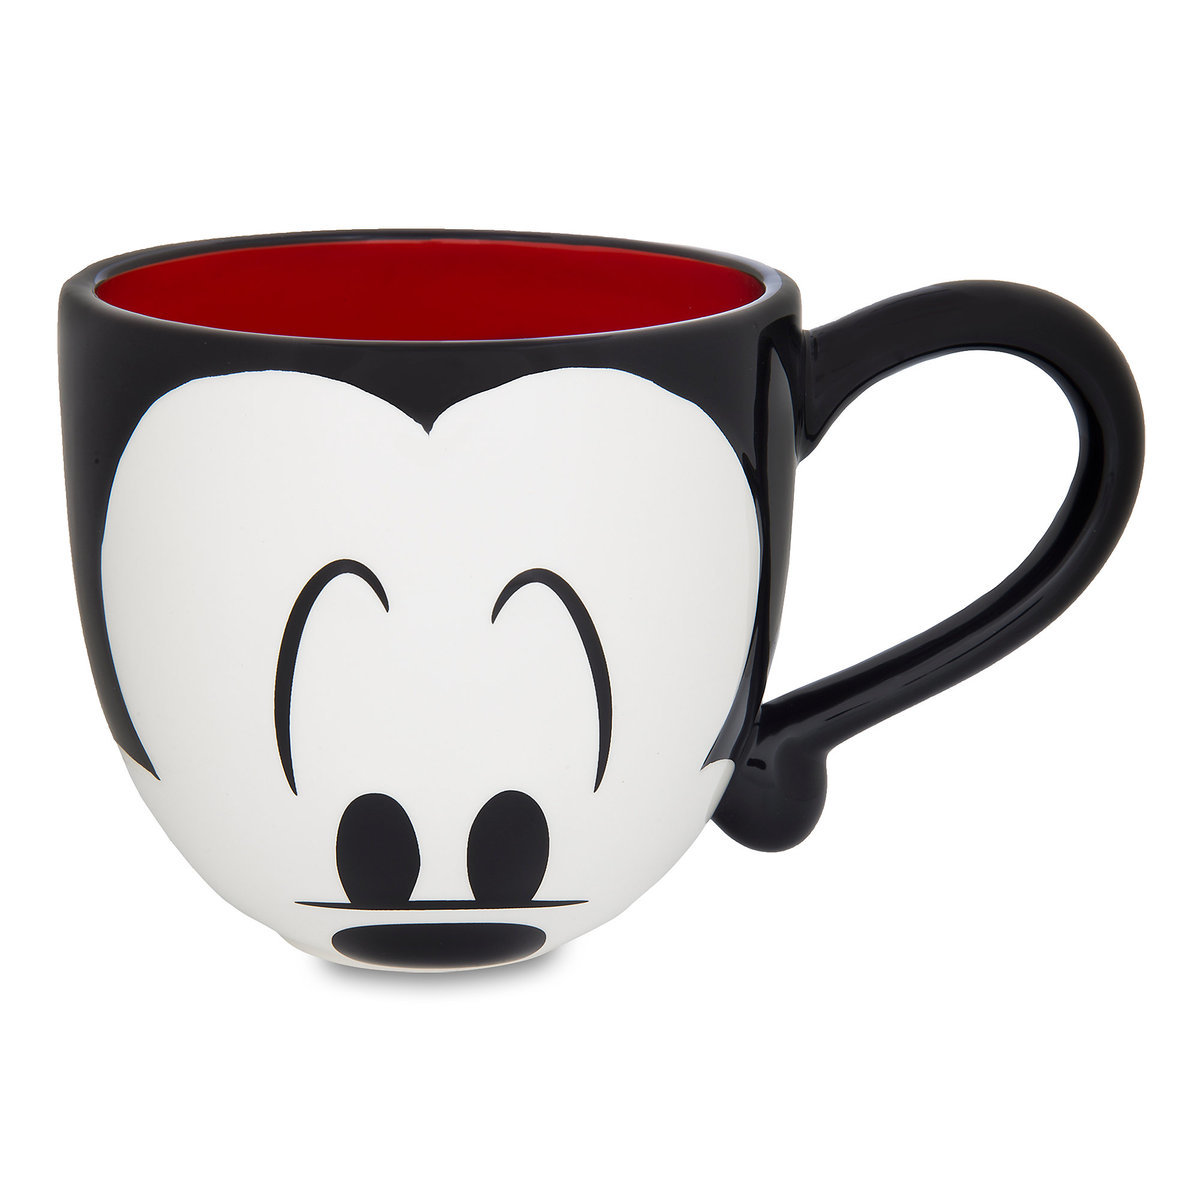 c89b43ac4f0f0 Disney Coffee Cup - Faces - Mickey Mouse